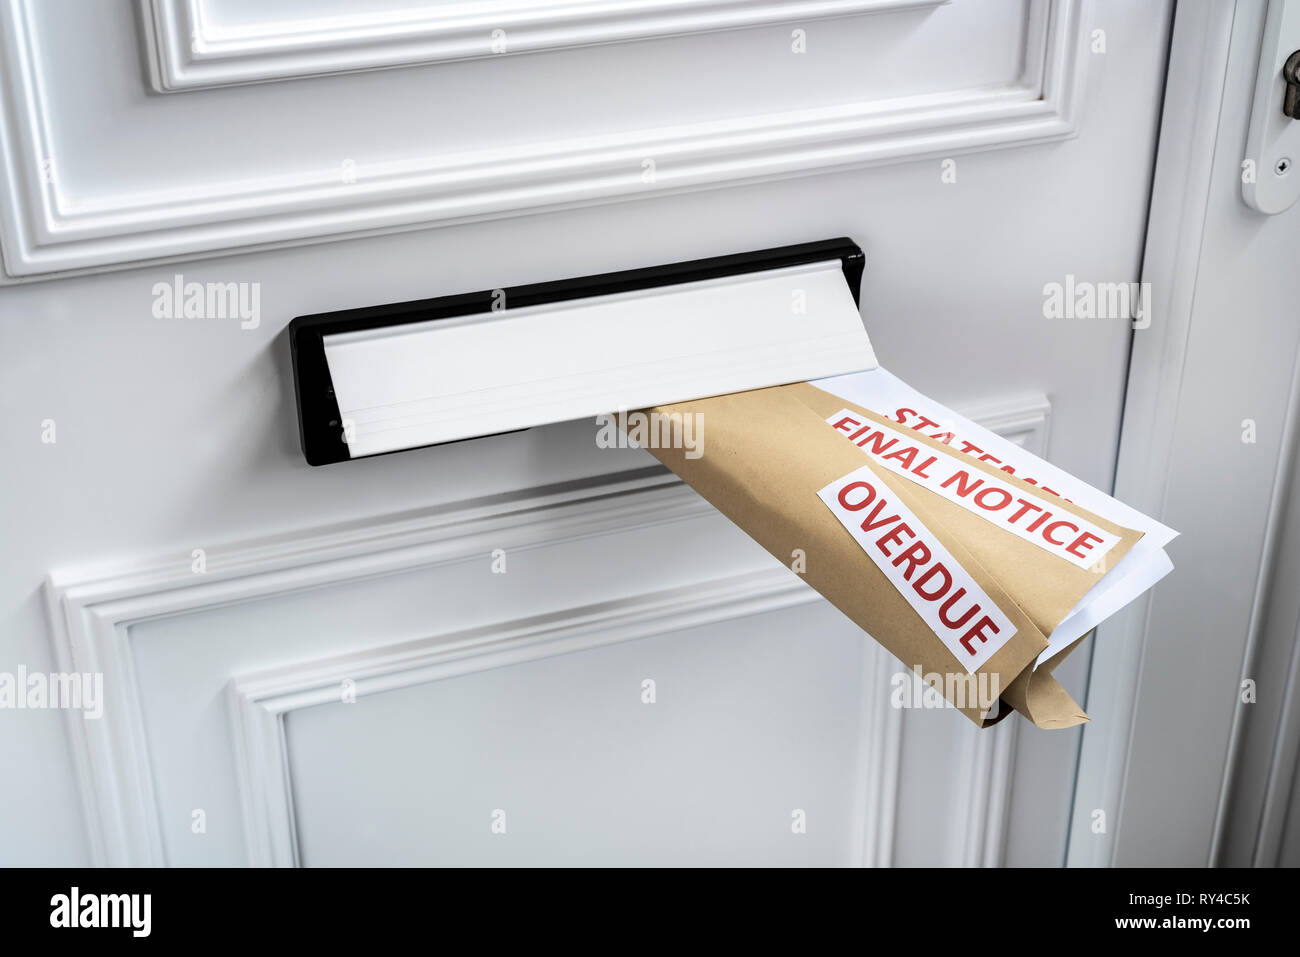 Statement, final notice, overdue, financial problems debt. Final demands delivered through a letterbox. - Stock Image